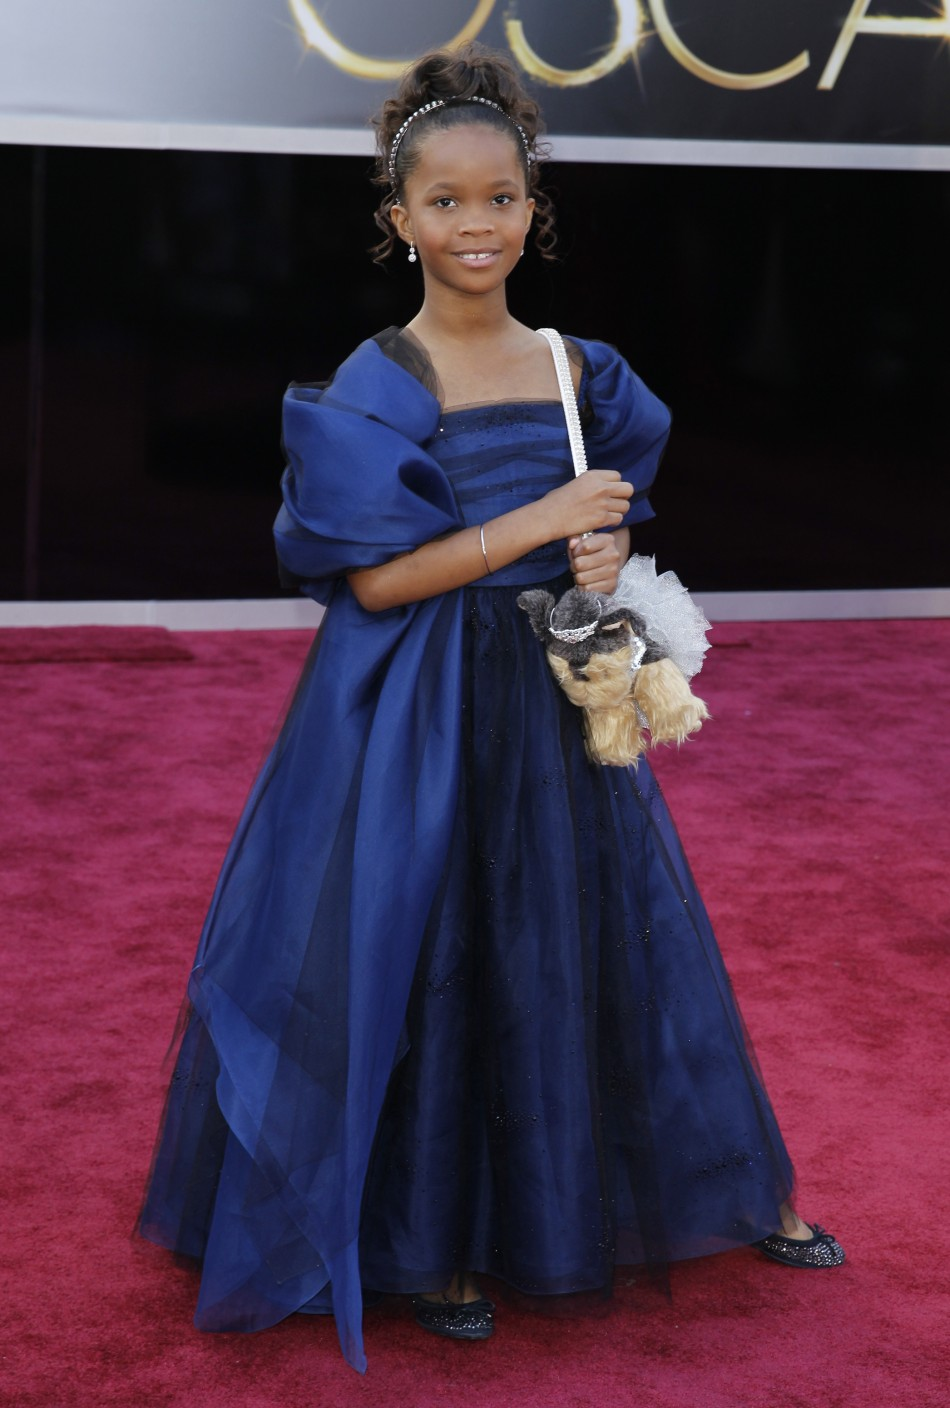 Quenzhane Wallis, best actress nominee for her role in Beasts of the Southern Wild, arrives at the 85th Academy Awards in Hollywood, California, February 24, 2013.